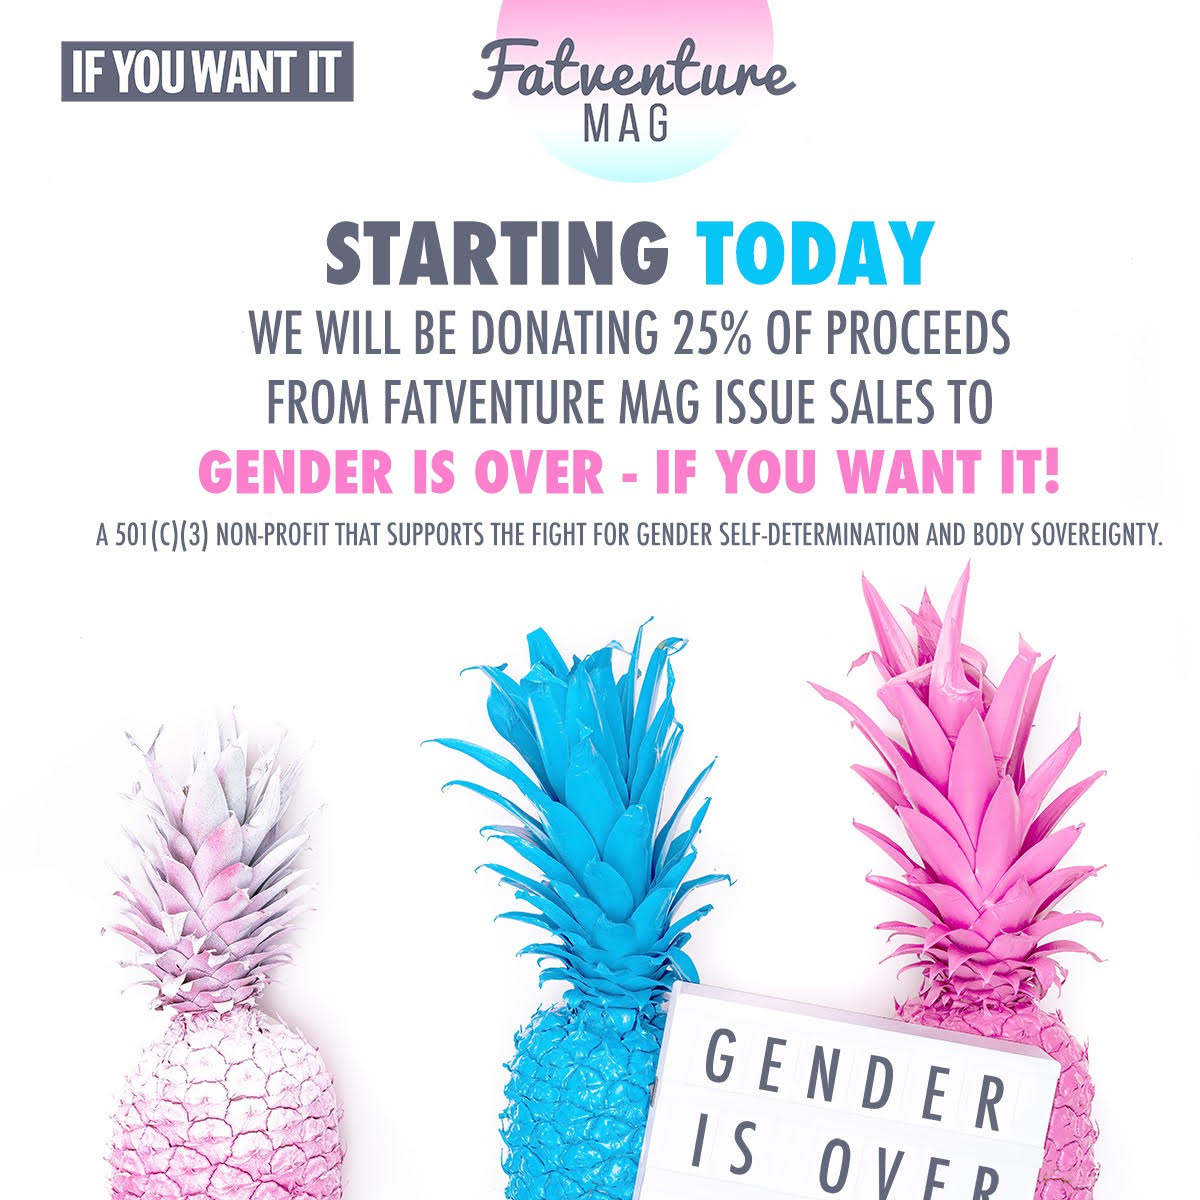 Fatventure Mag is partnering with Gender Is Over - If You Want It!, LTD to support trans rights